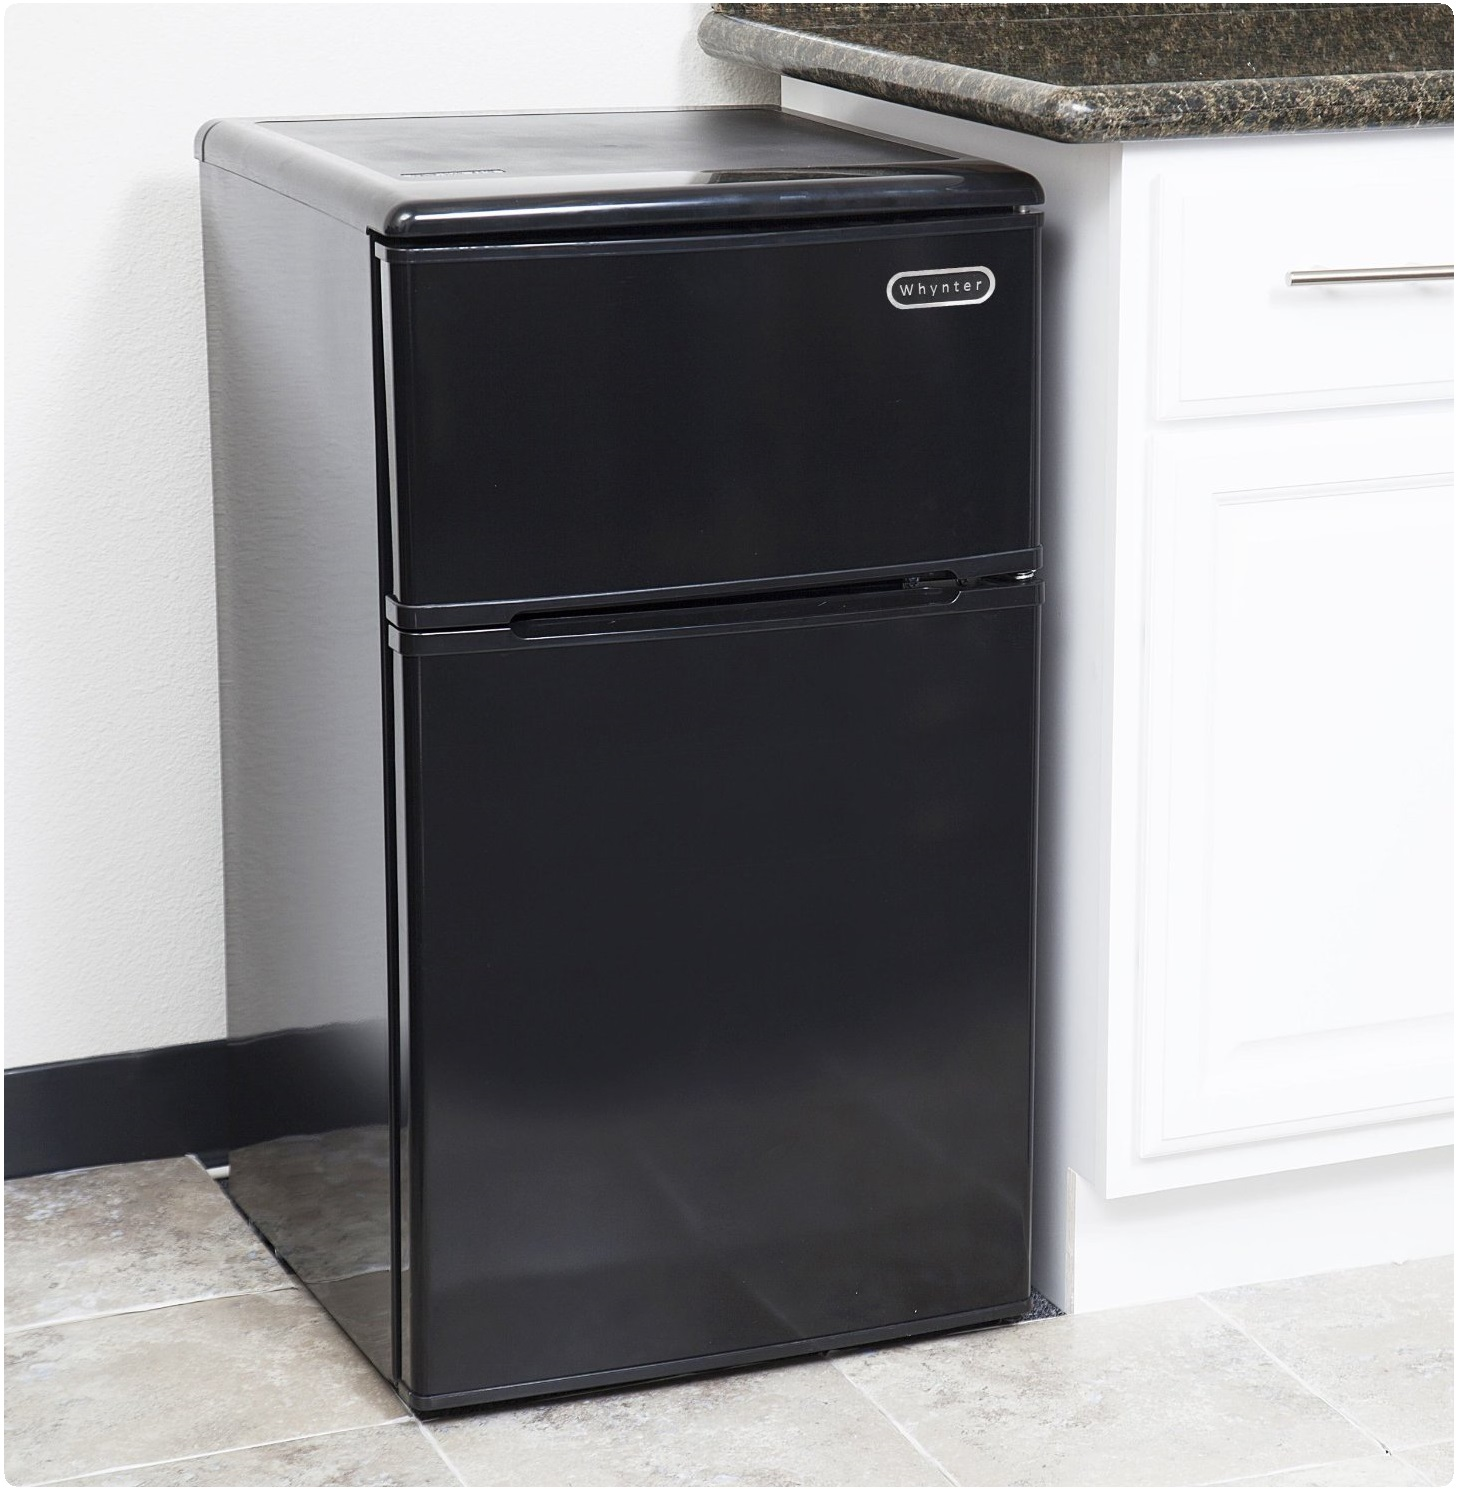 Whynter MRF-310DB Compact Double Door Energy Star Refrigerator kitchen